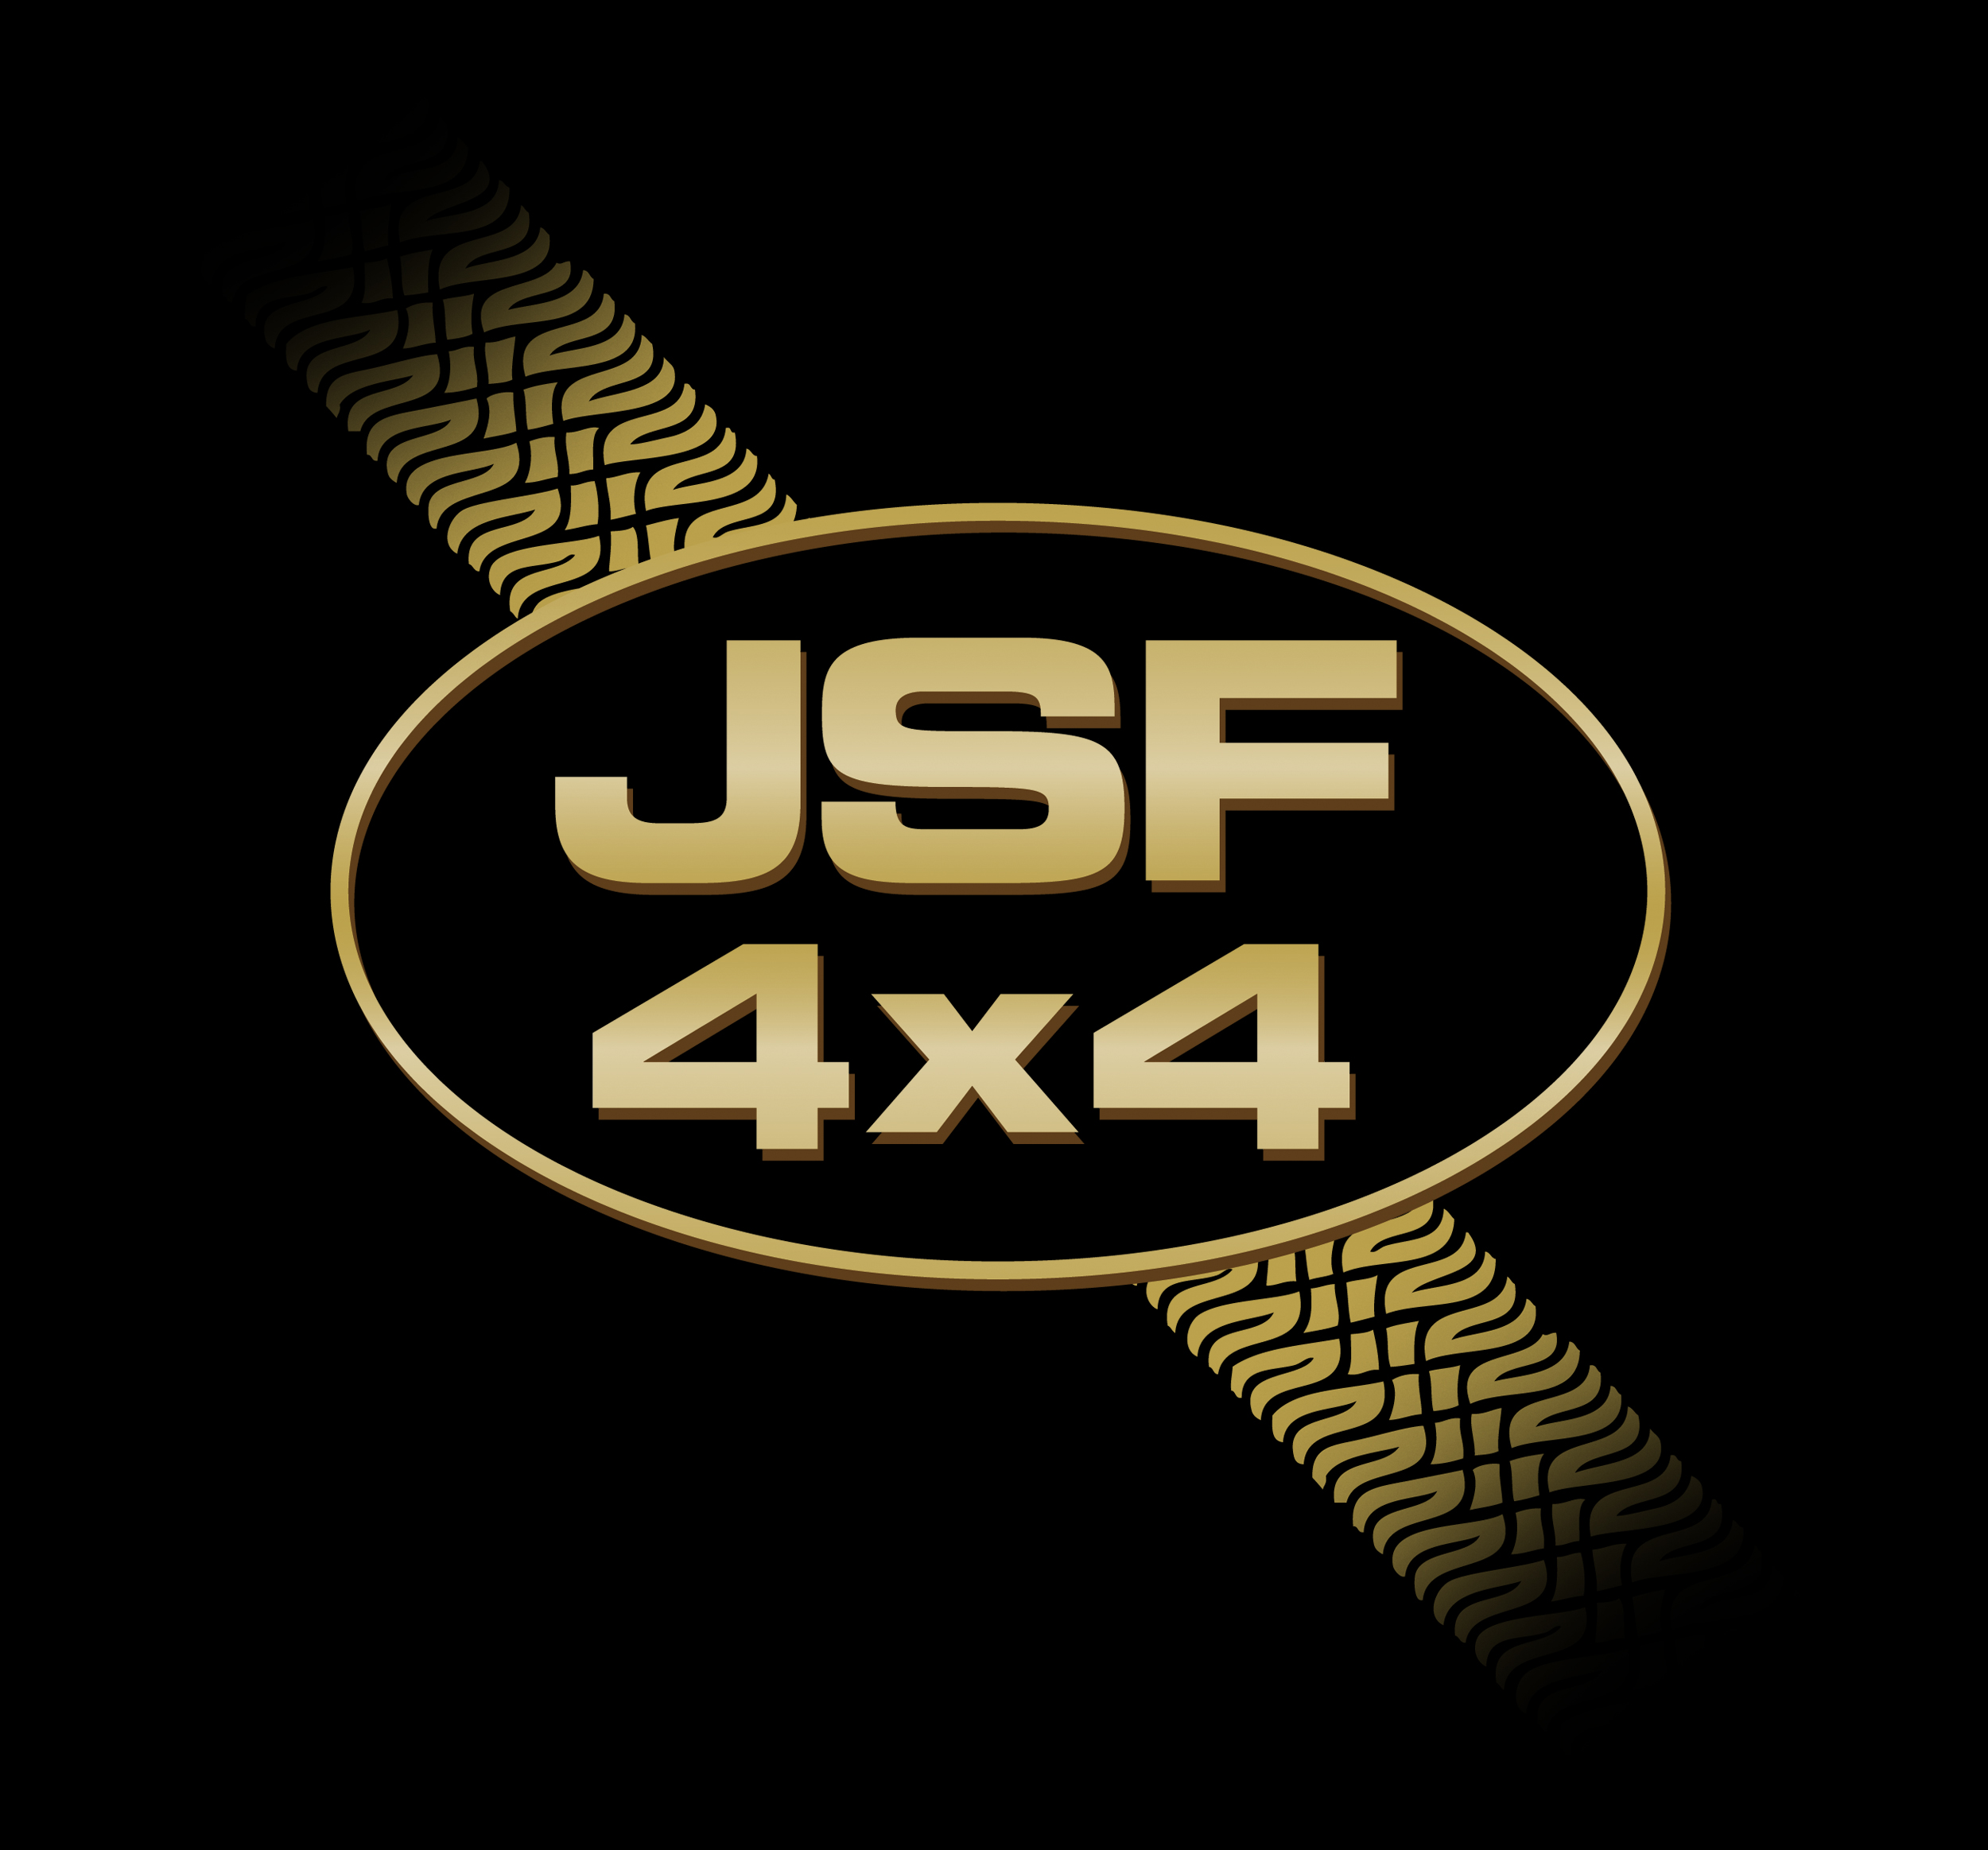 JSF LOGO ON BLK.jpg.jpg